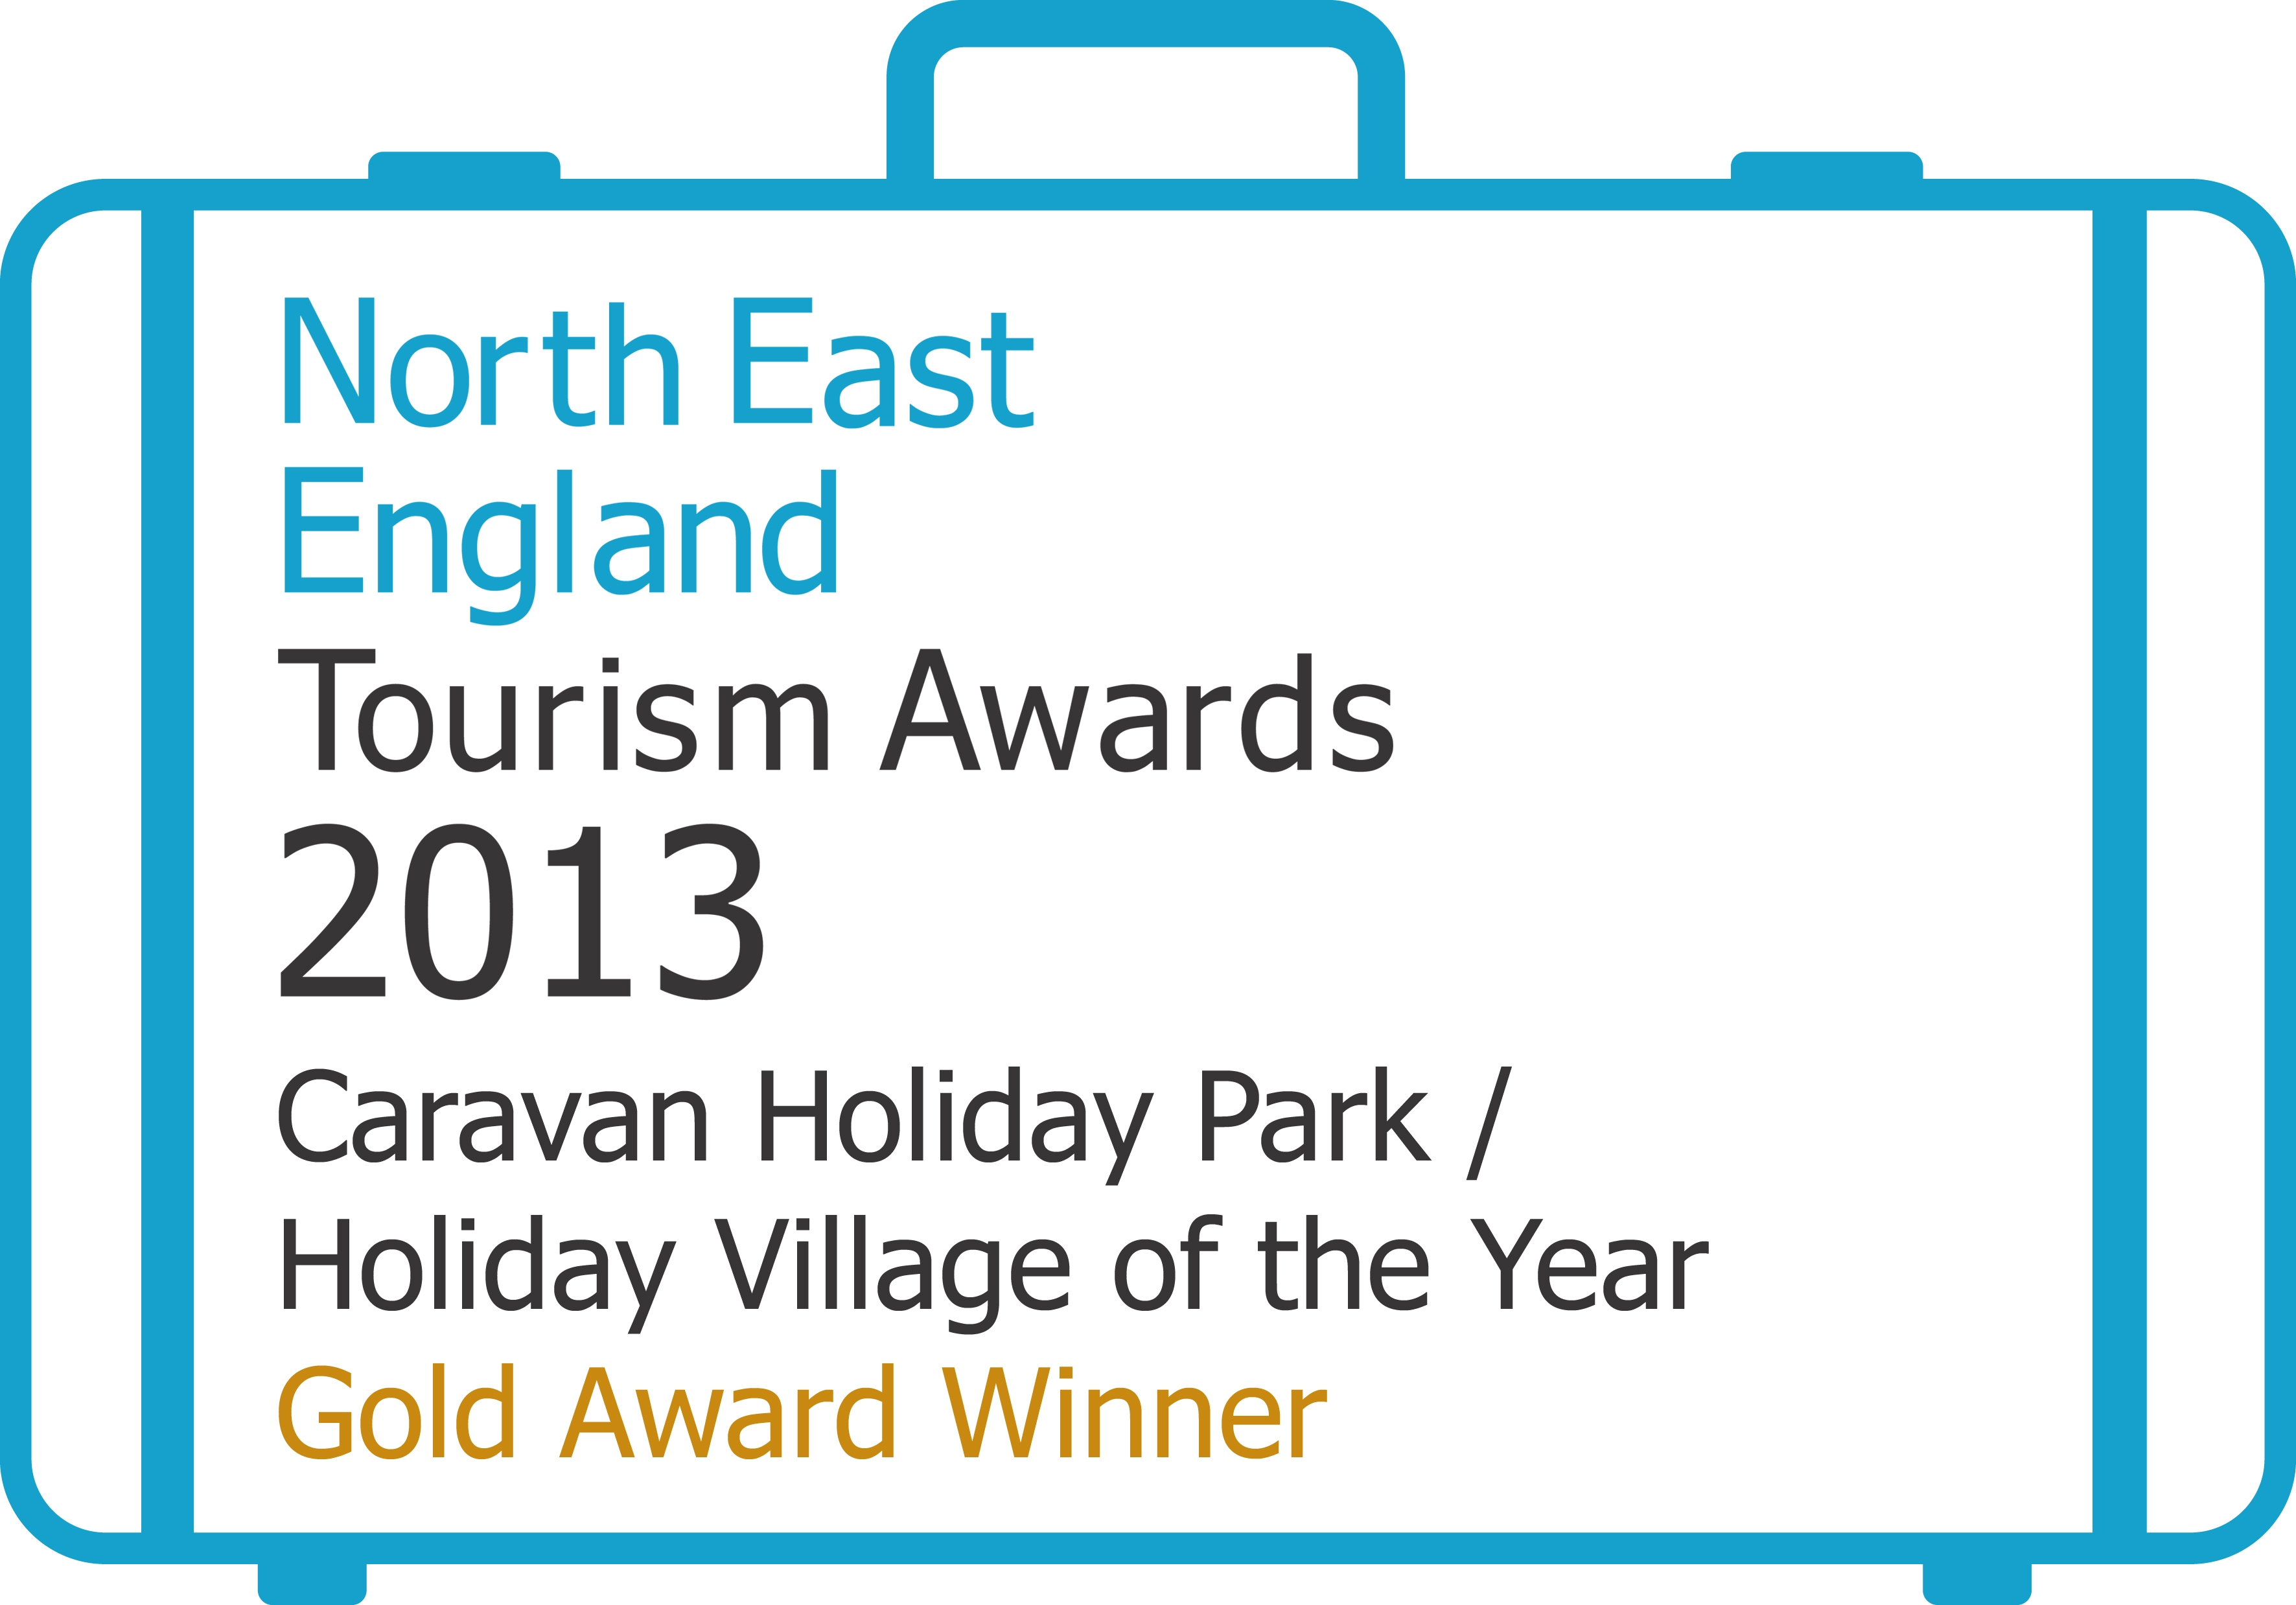 North East England Tourism Awards 2013